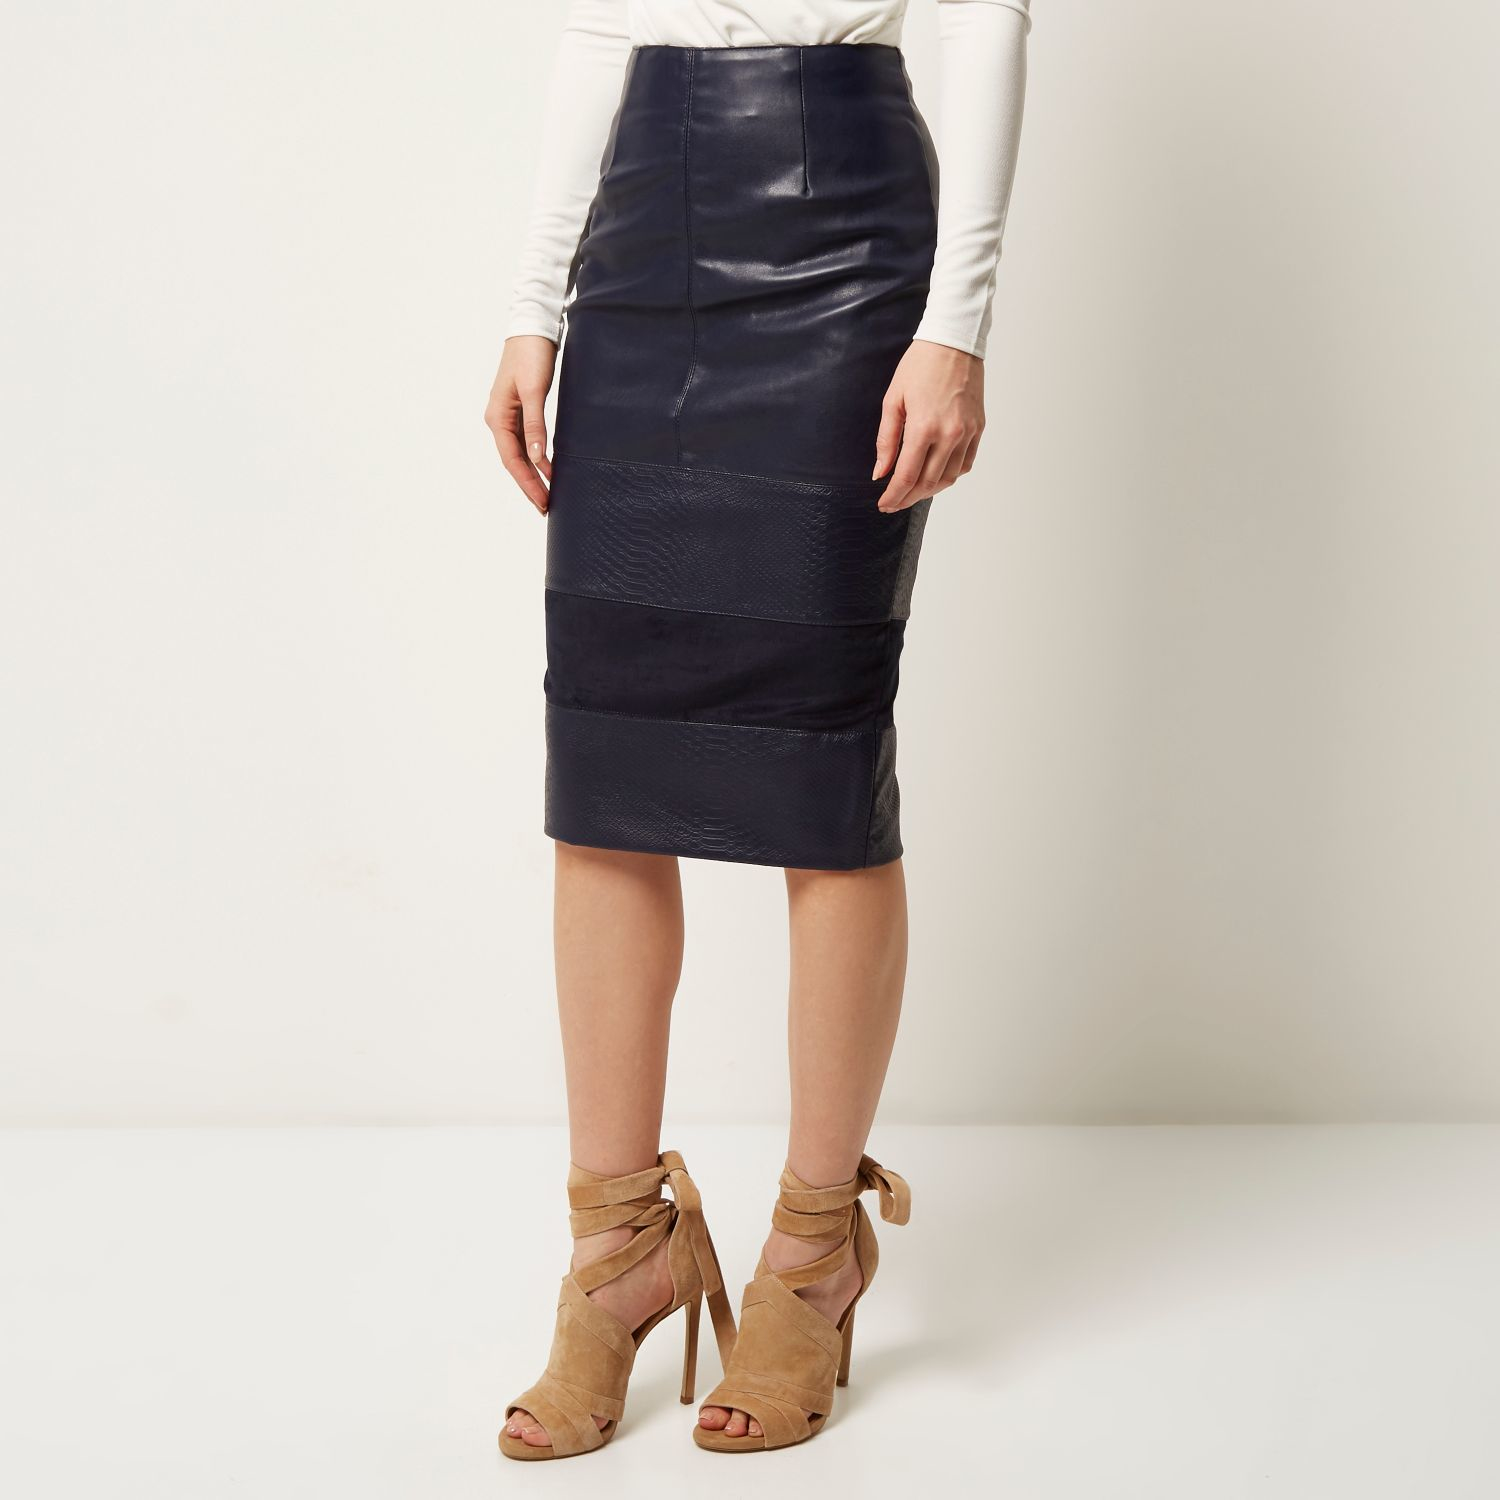 Stunning Black Leather Escada Leather skirt with Blue stitching detailing. Kick pleat in the back. Closure is a snap and button. This is out of a huge collection of clothing and jewelry that was purchased in the late s early s and never worn.